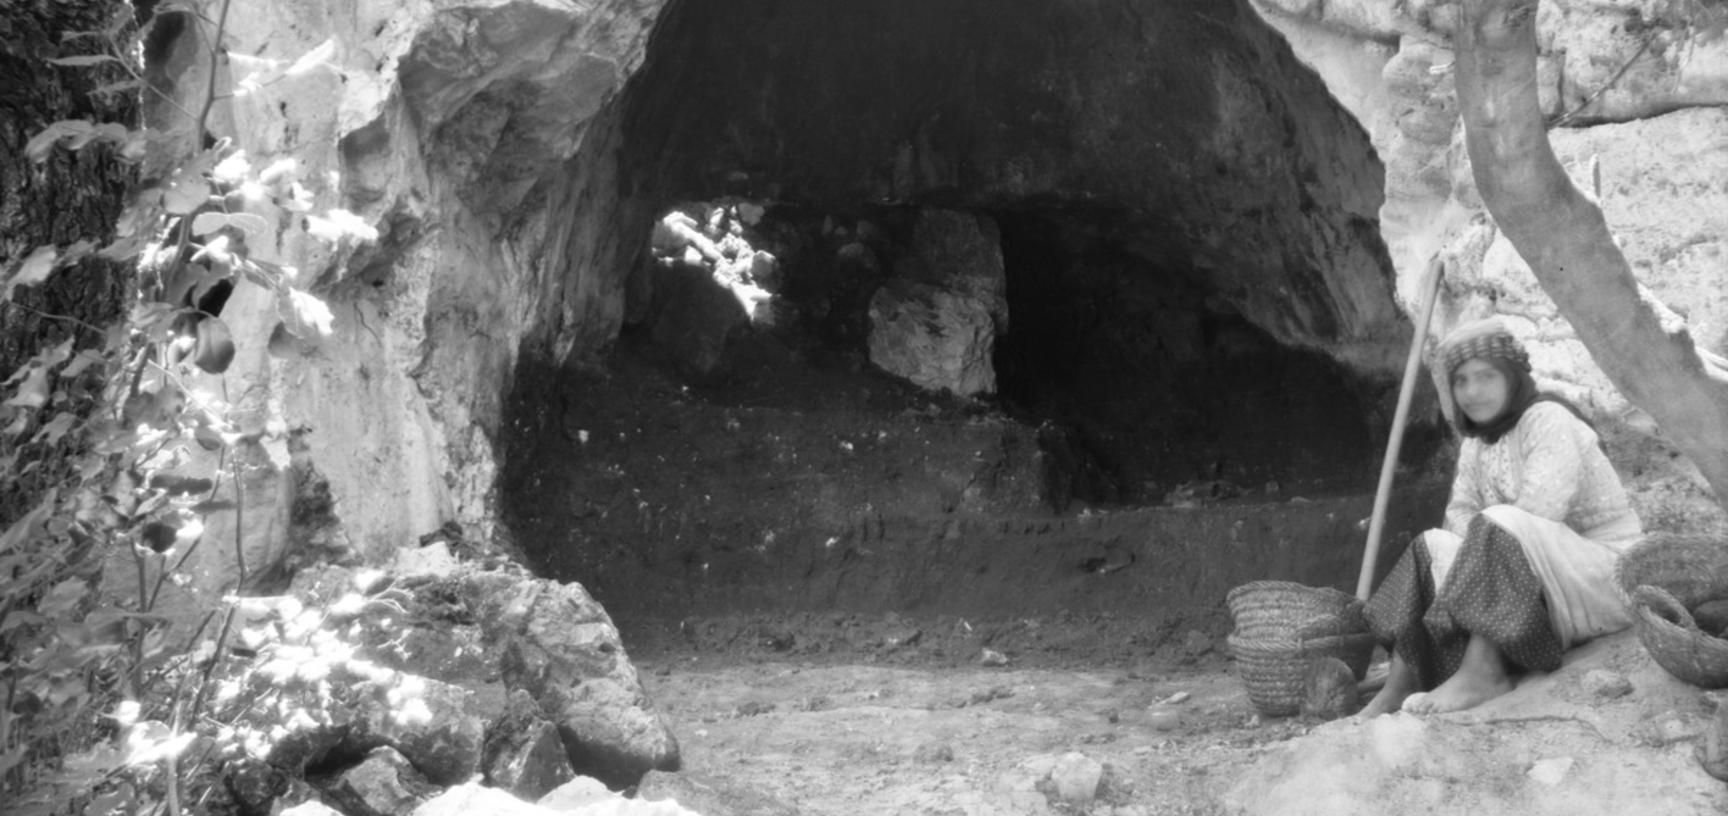 This photograph captures the condition of Tabun Cave before it was excavated in 1929. (Copyright Pitt Rivers Museum, University of Oxford. Accession Number: 1998.294.262)